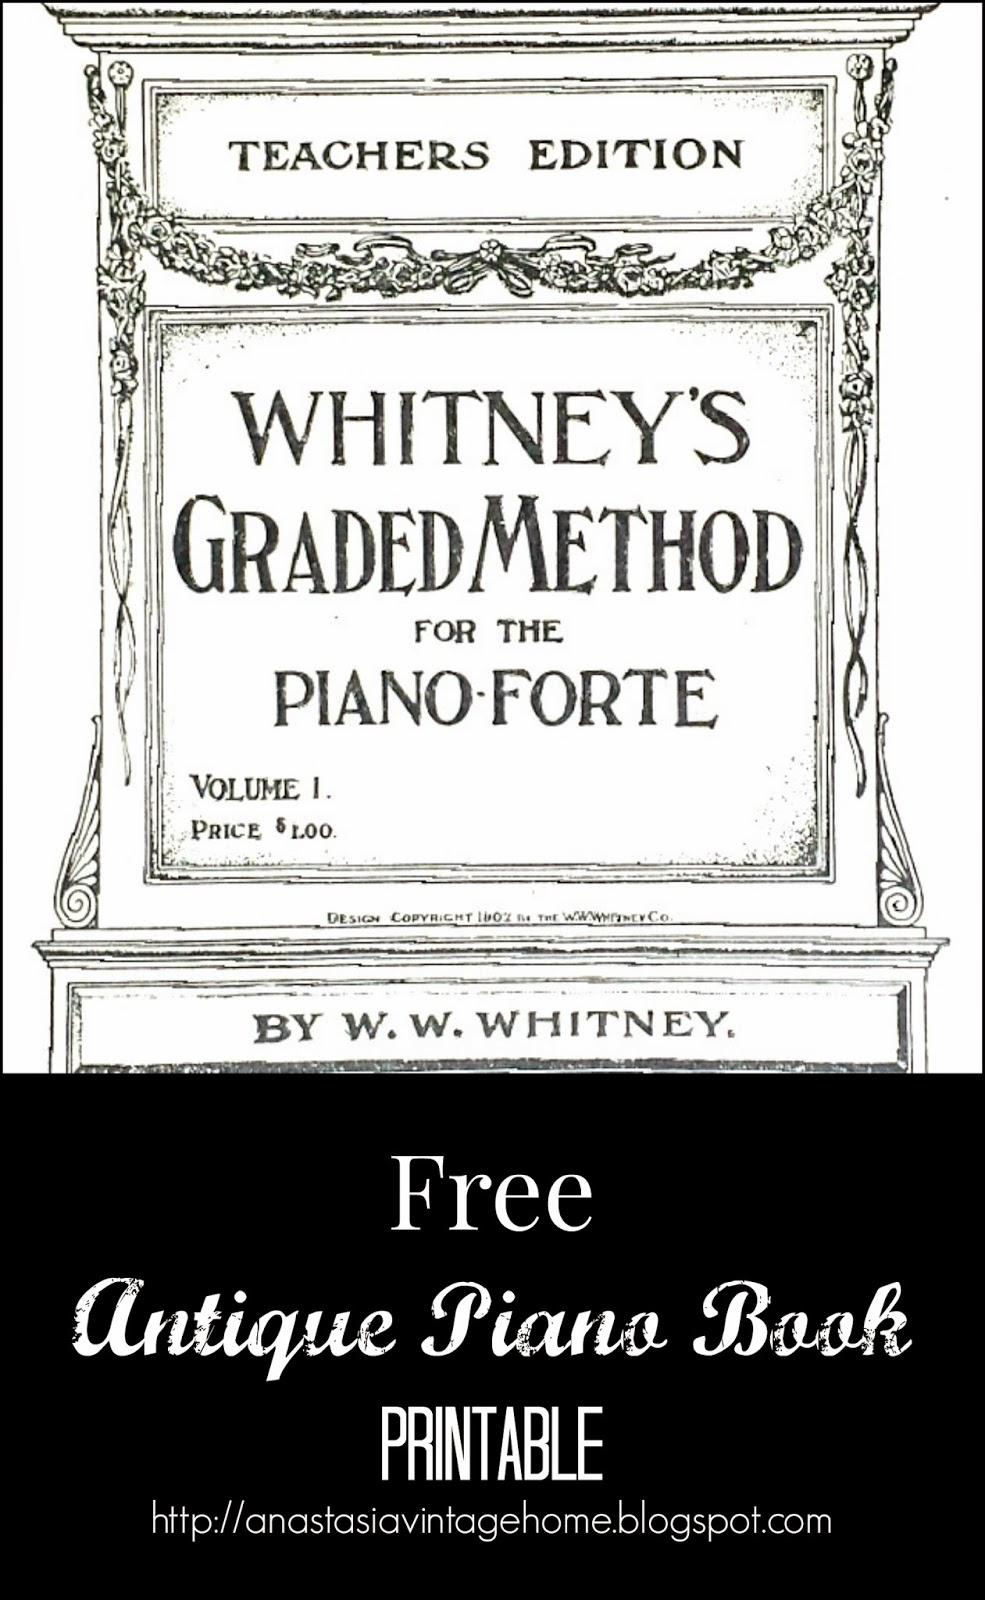 Free Antique Piano Book Printable | Anastasia Vintage